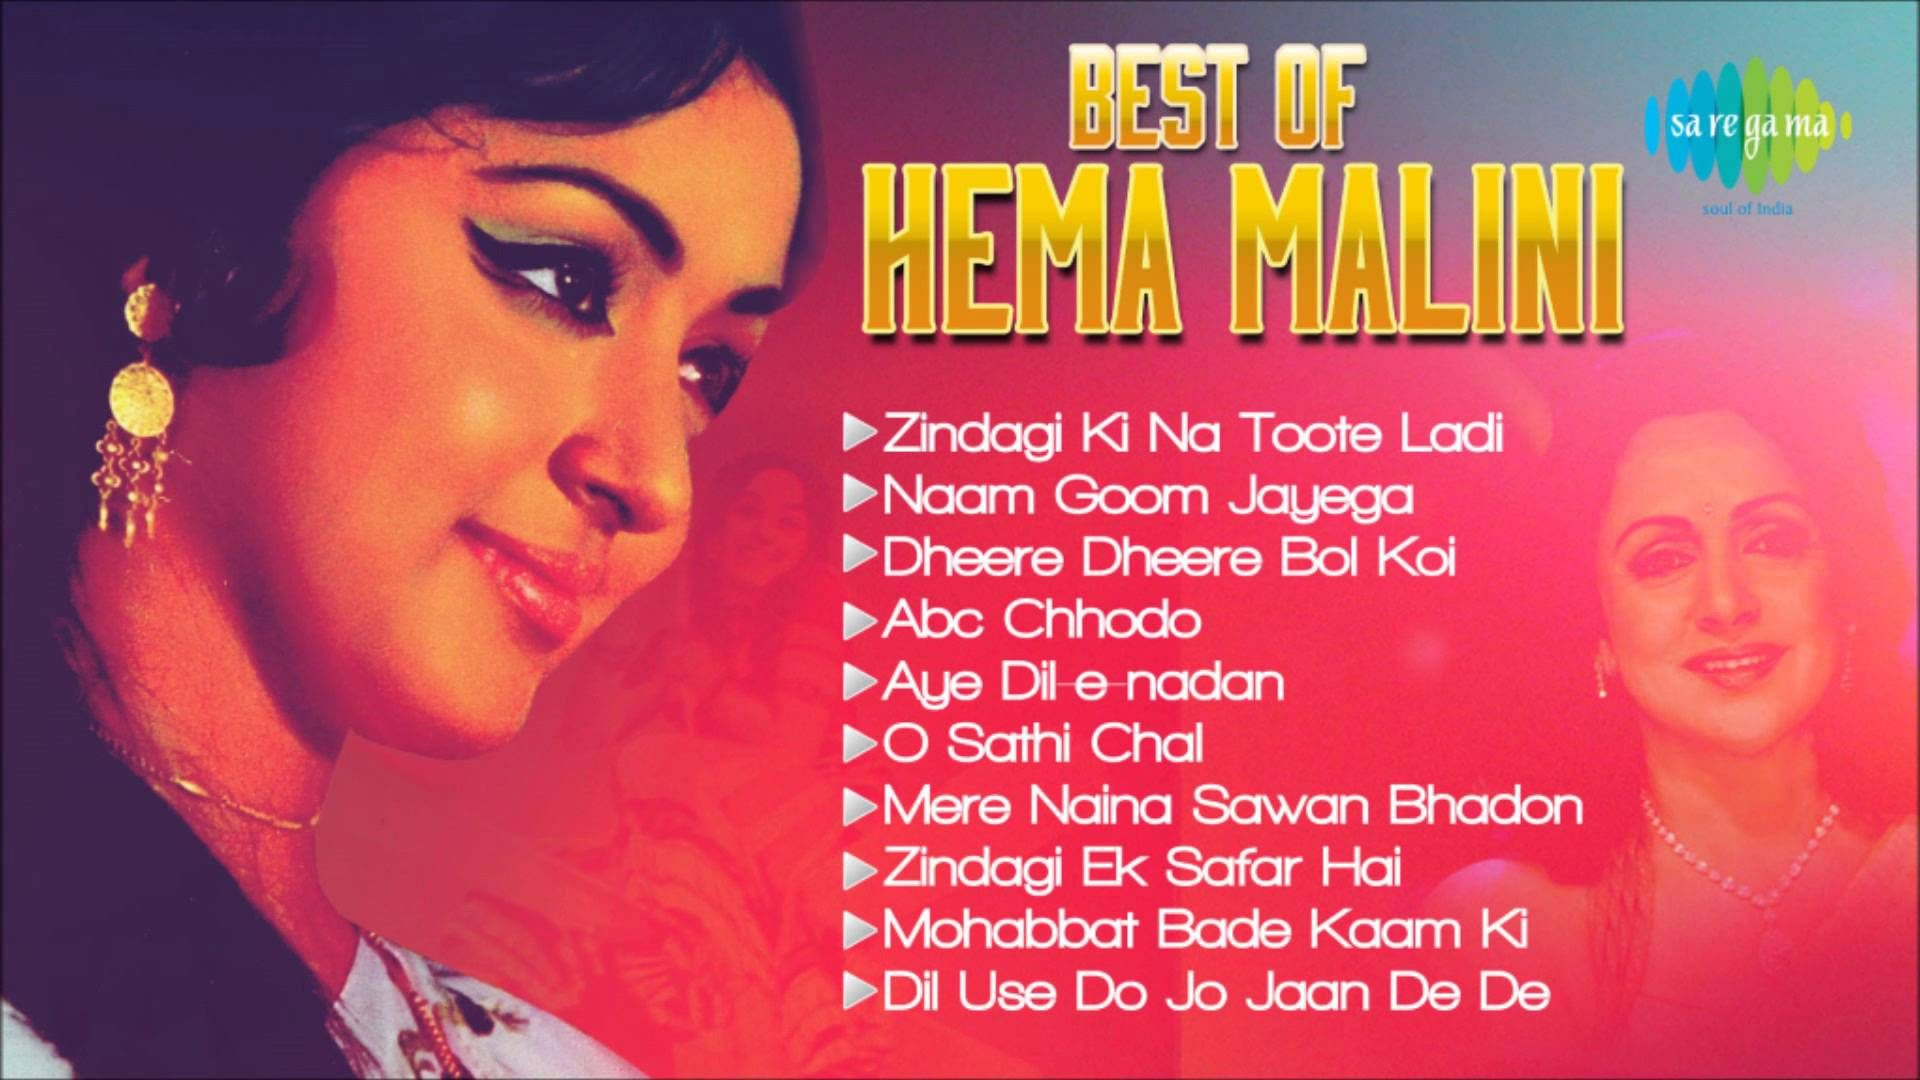 Hit Songs Of Hema Malini Old Hindi Songs Best Of Hema Malini Film Songs Audio Jukebox Hindi Movies Hindi Old Songs Bollywood Songs